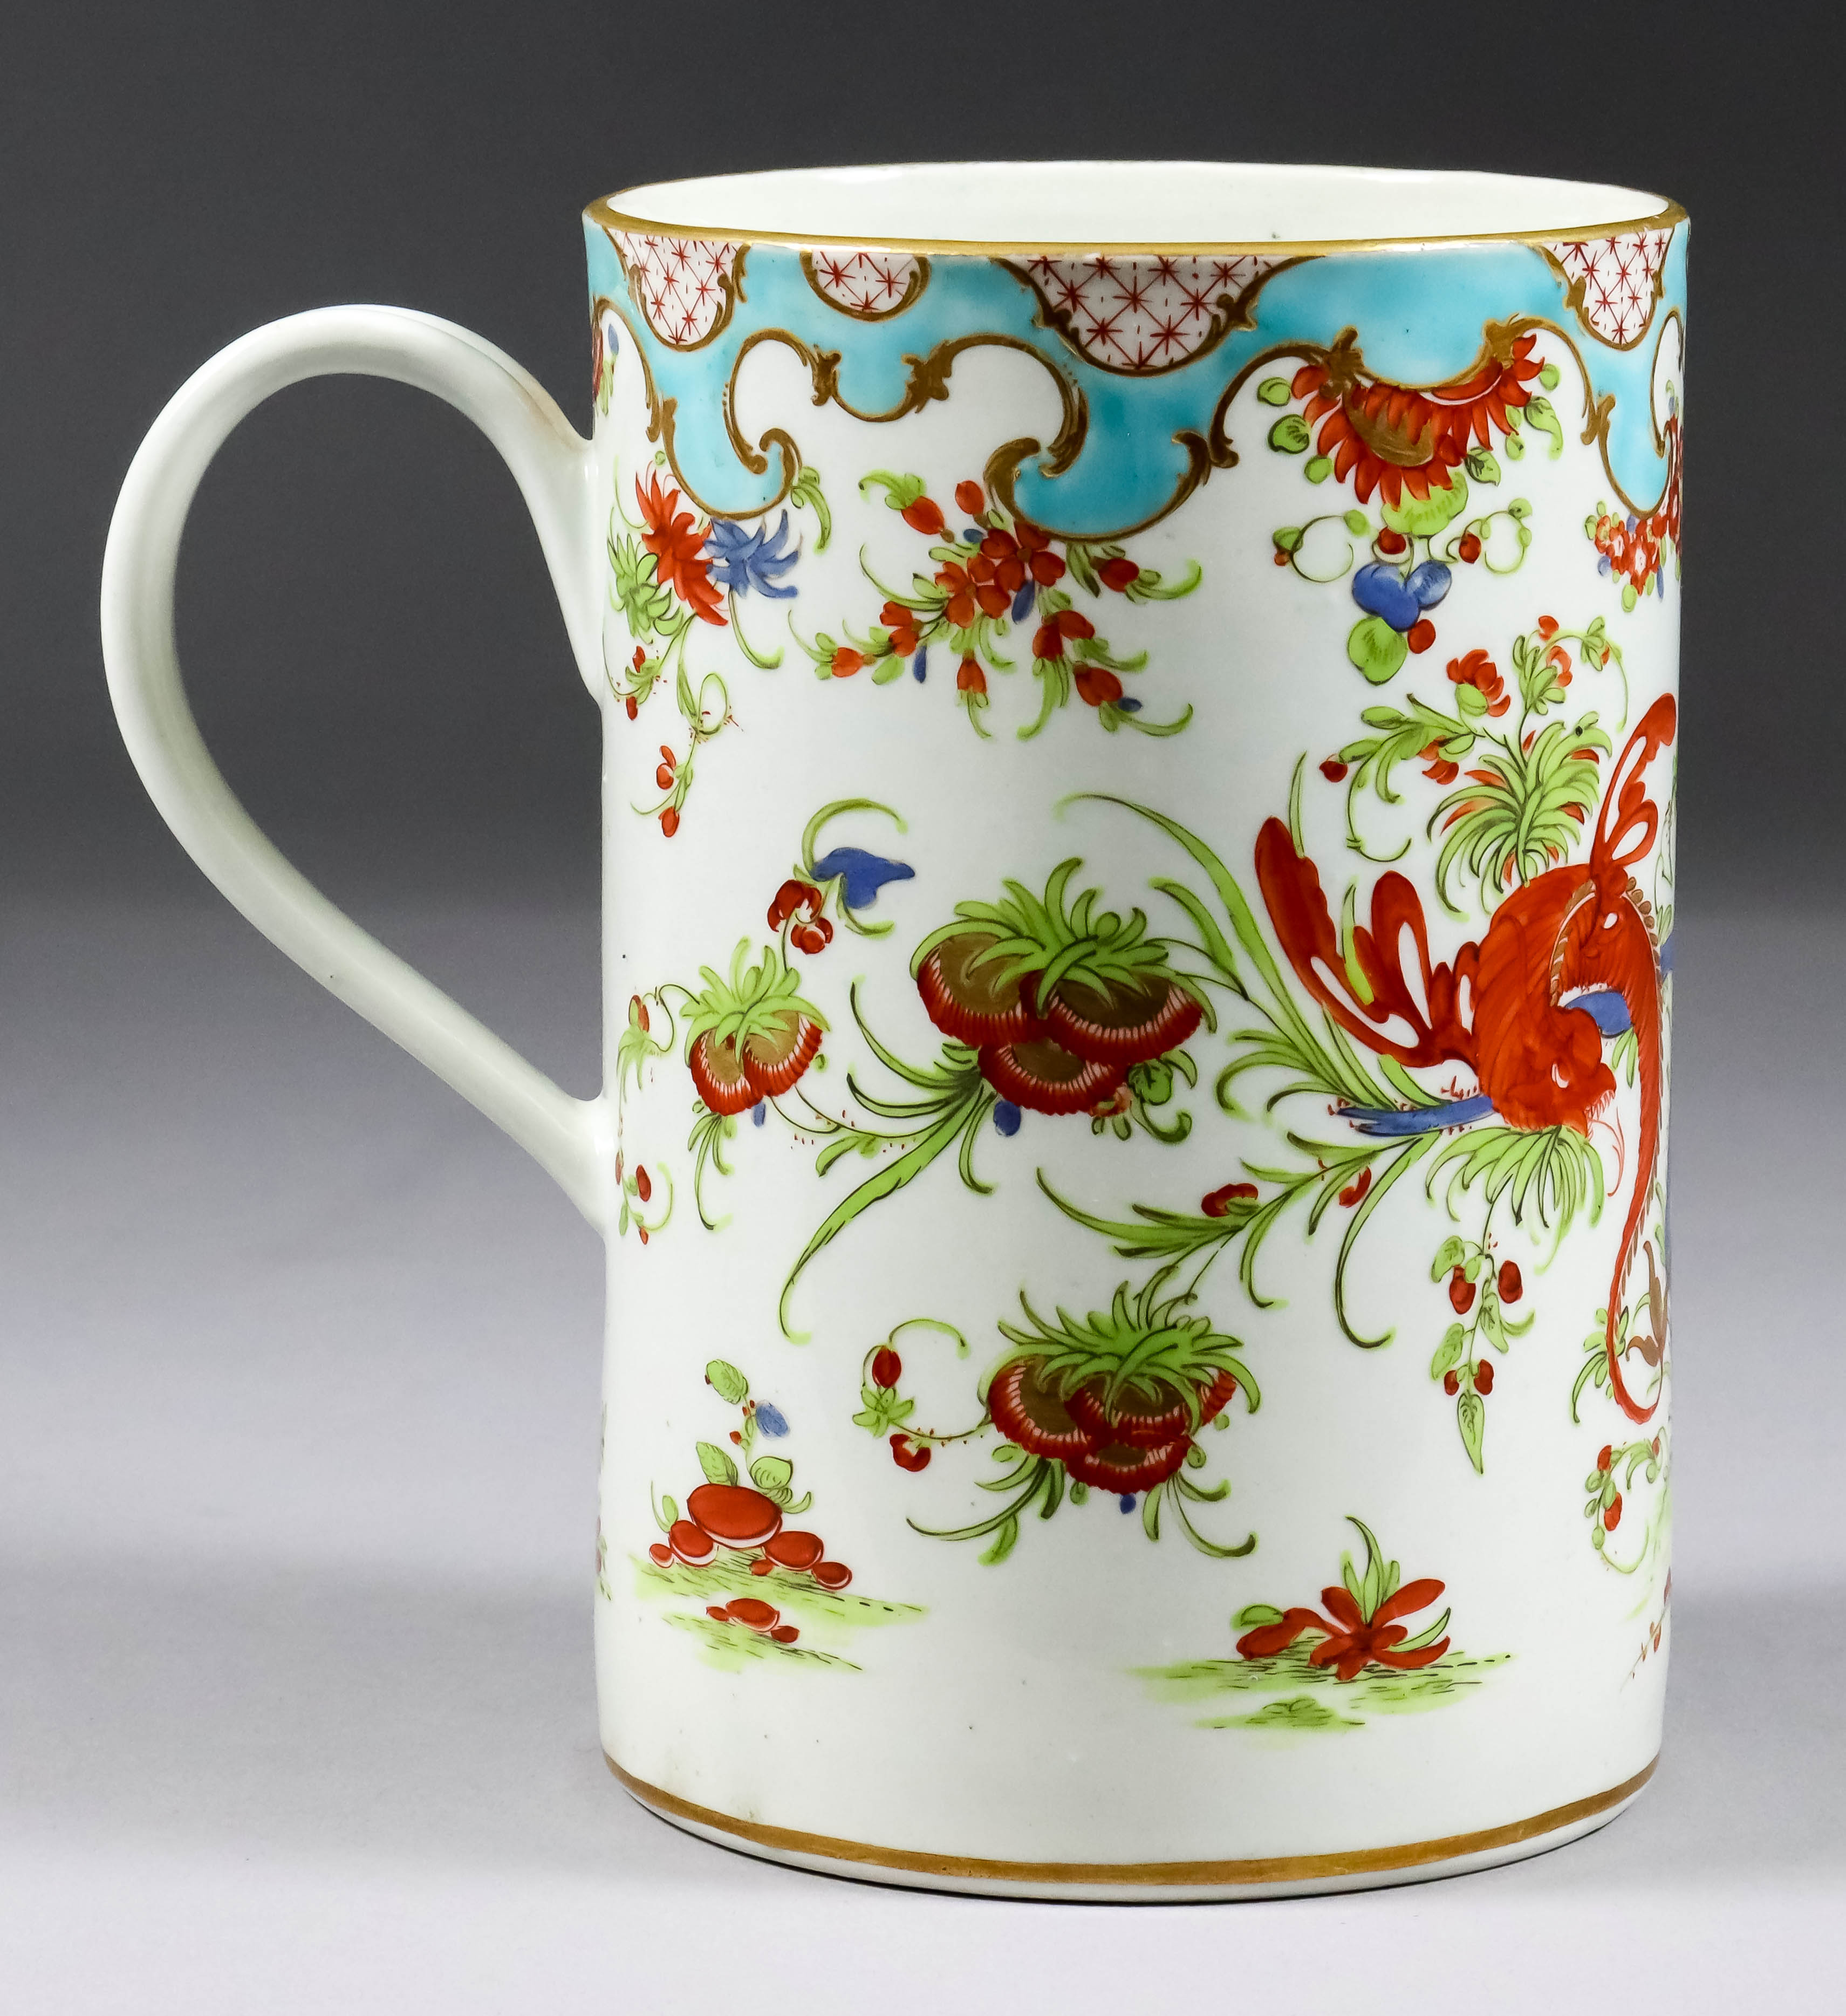 """Lot 532 - A Worcester Porcelain Tankard, 18th Century, painted with """"Jabberwocky"""" pattern, 5.5ins high"""